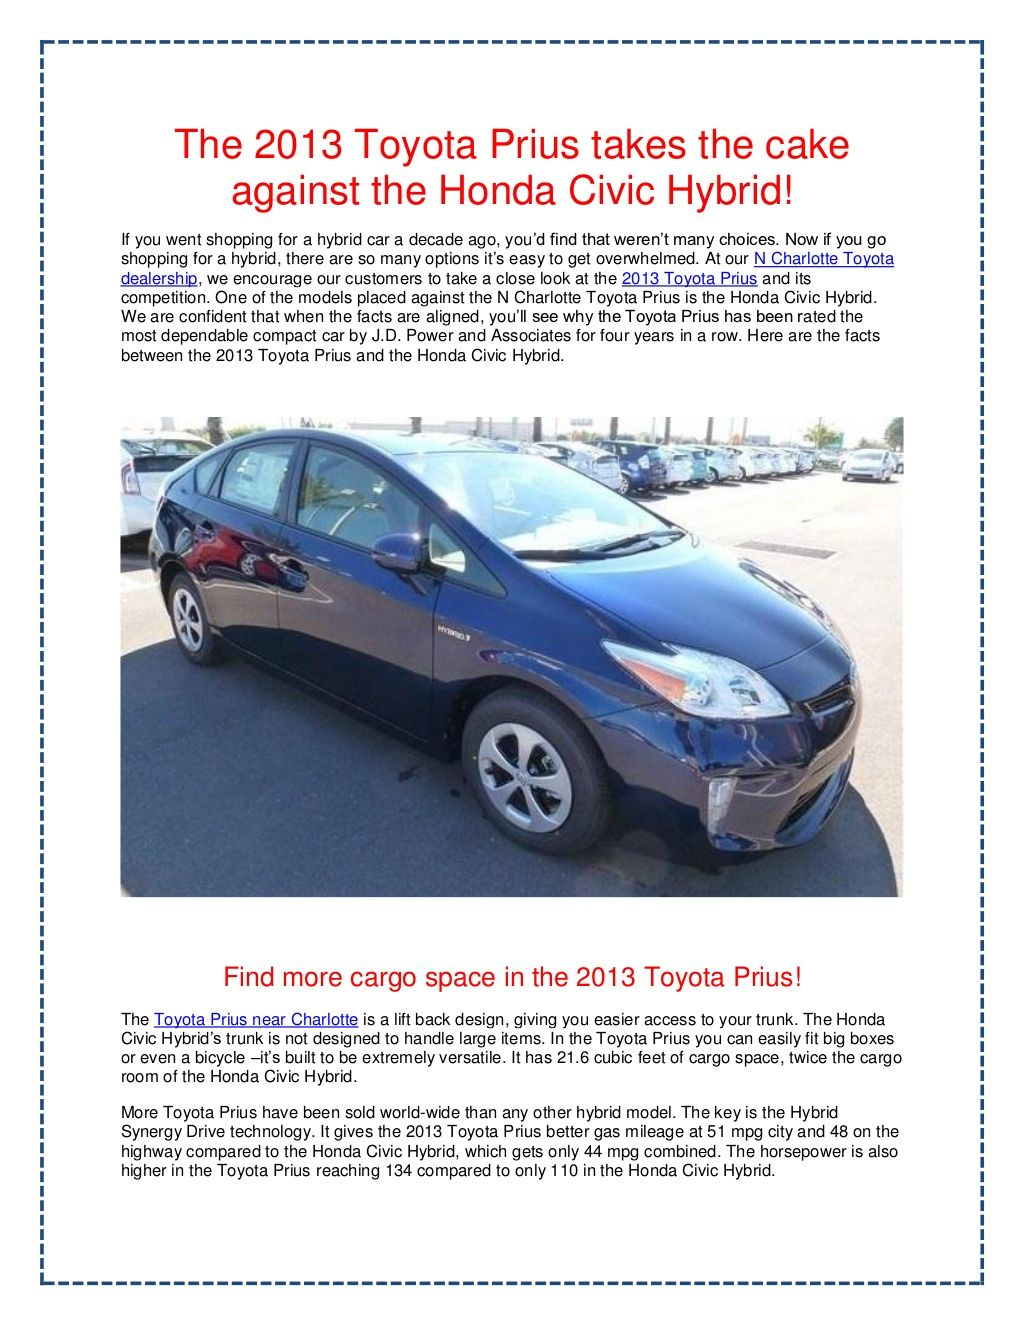 The Toyota Prius Is A Hybrid That Tops Millions Of Sales Worldwide N Charlotte Has Complied Facts To Prove Why Such